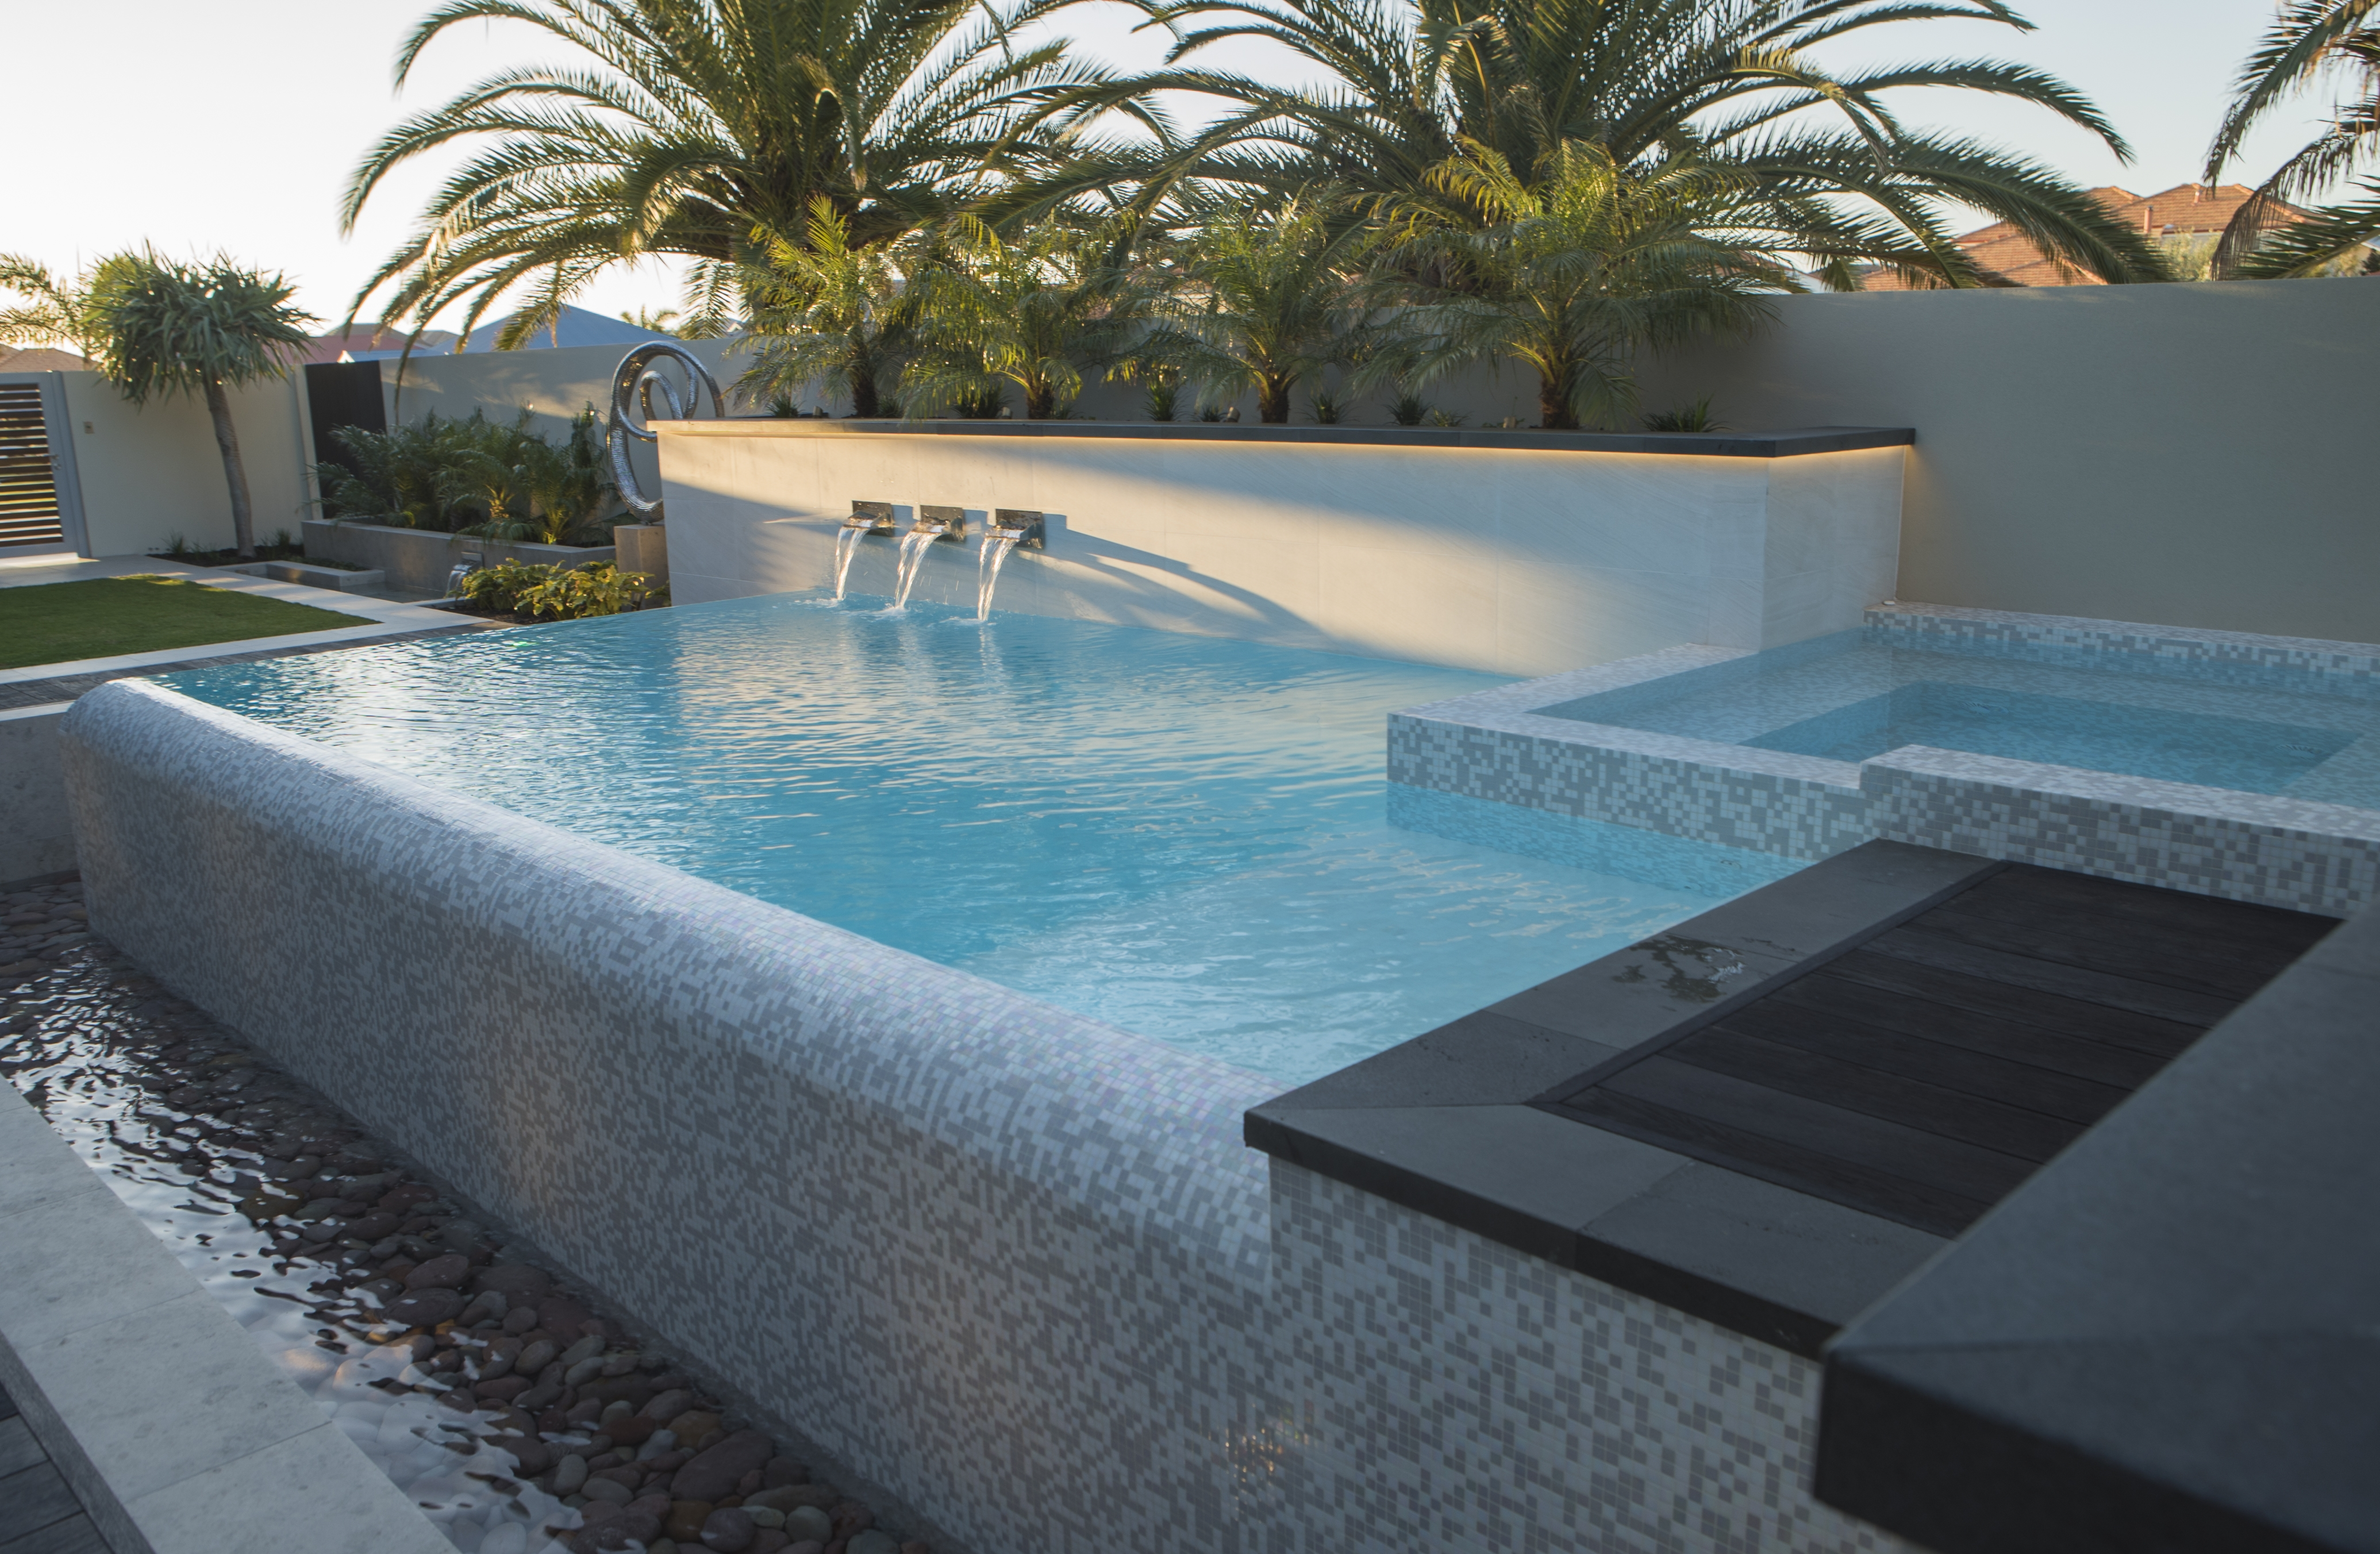 Pools By Design Sept 2016 001-66